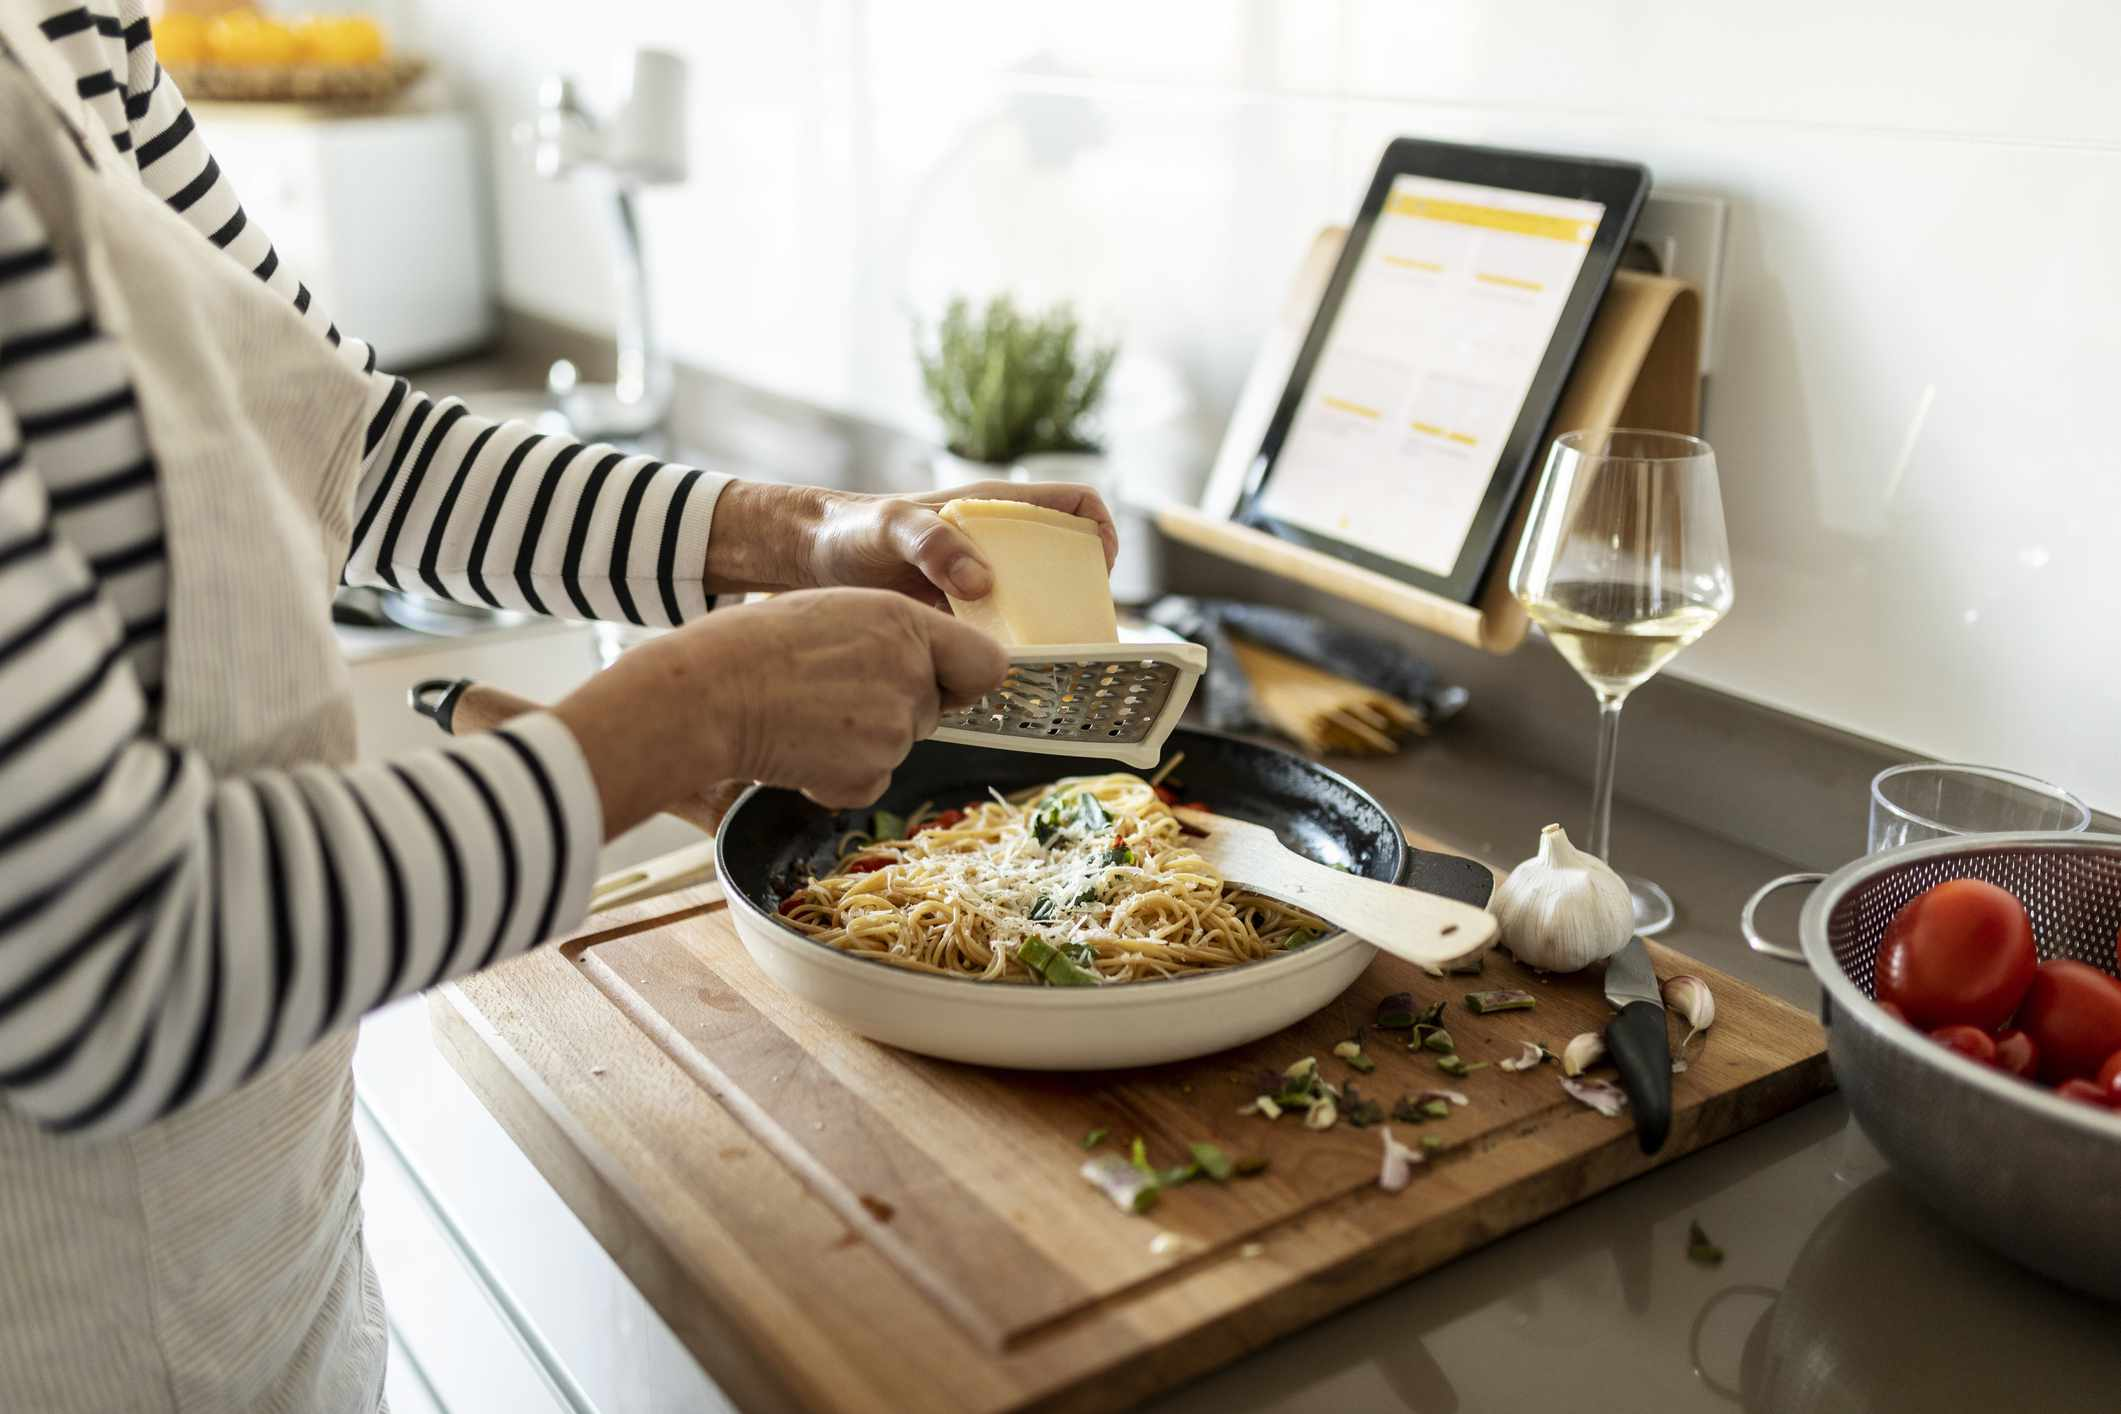 A woman grating cheese and cooking.